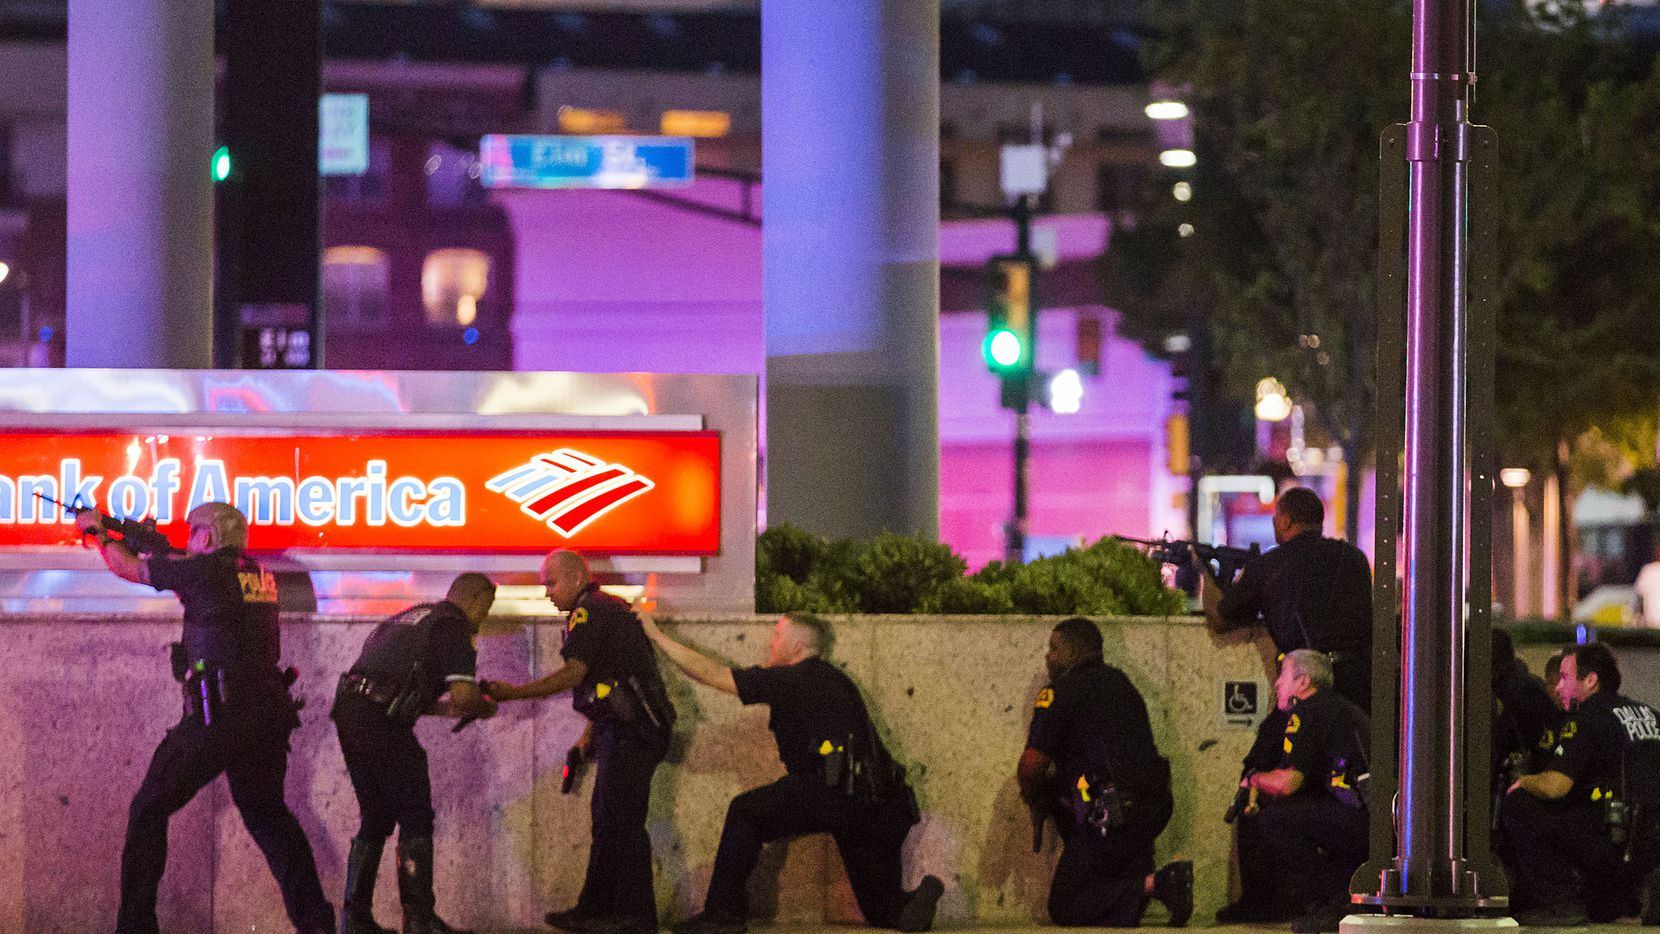 Dallas police respond after shots were fired at the protest in downtown Dallas.